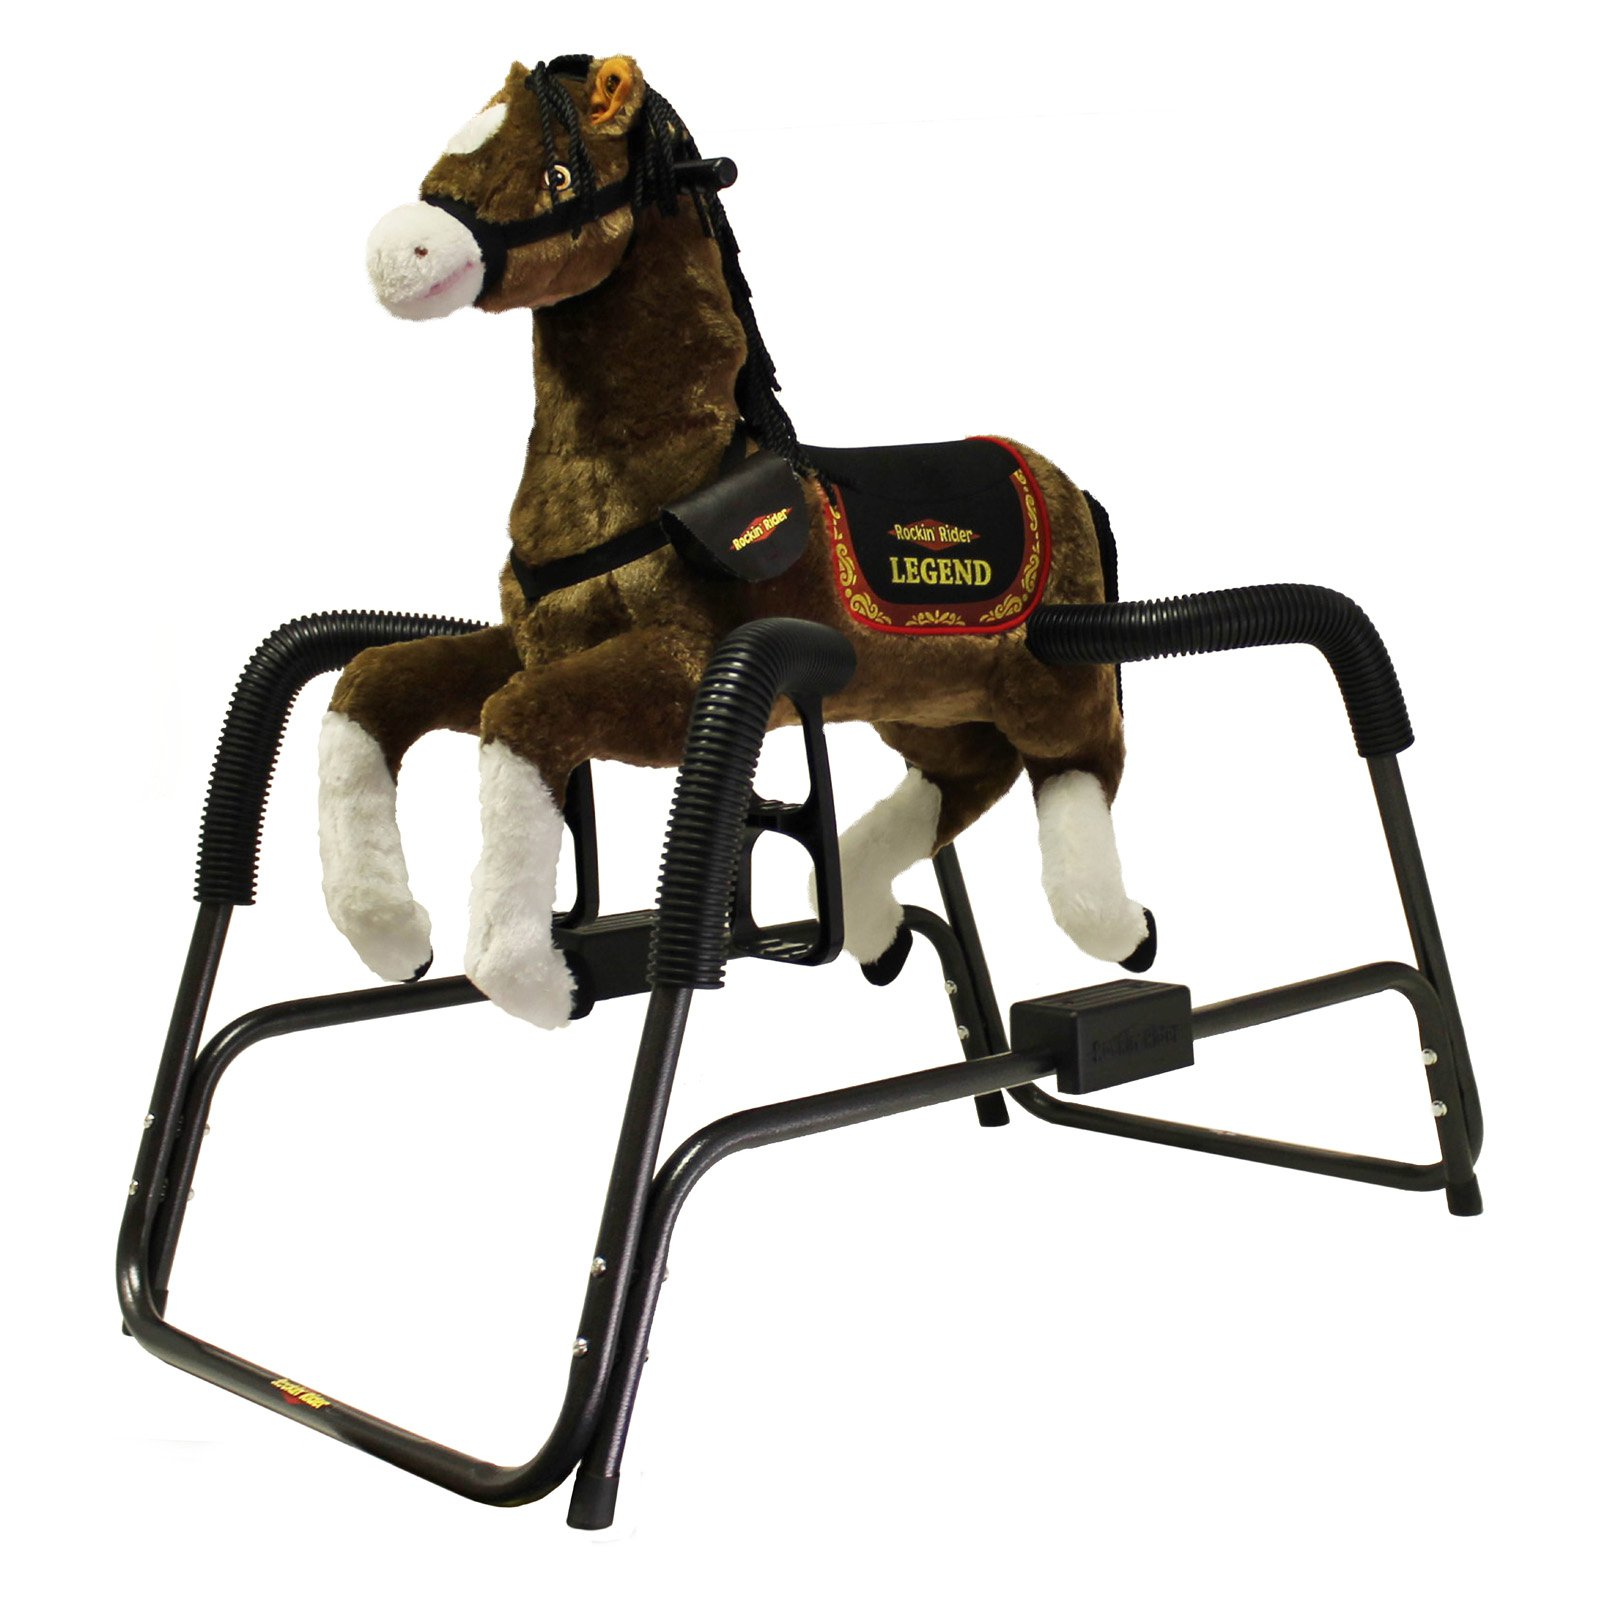 Rockin Rider Legend the Deluxe Talking Plush Spring Horse with